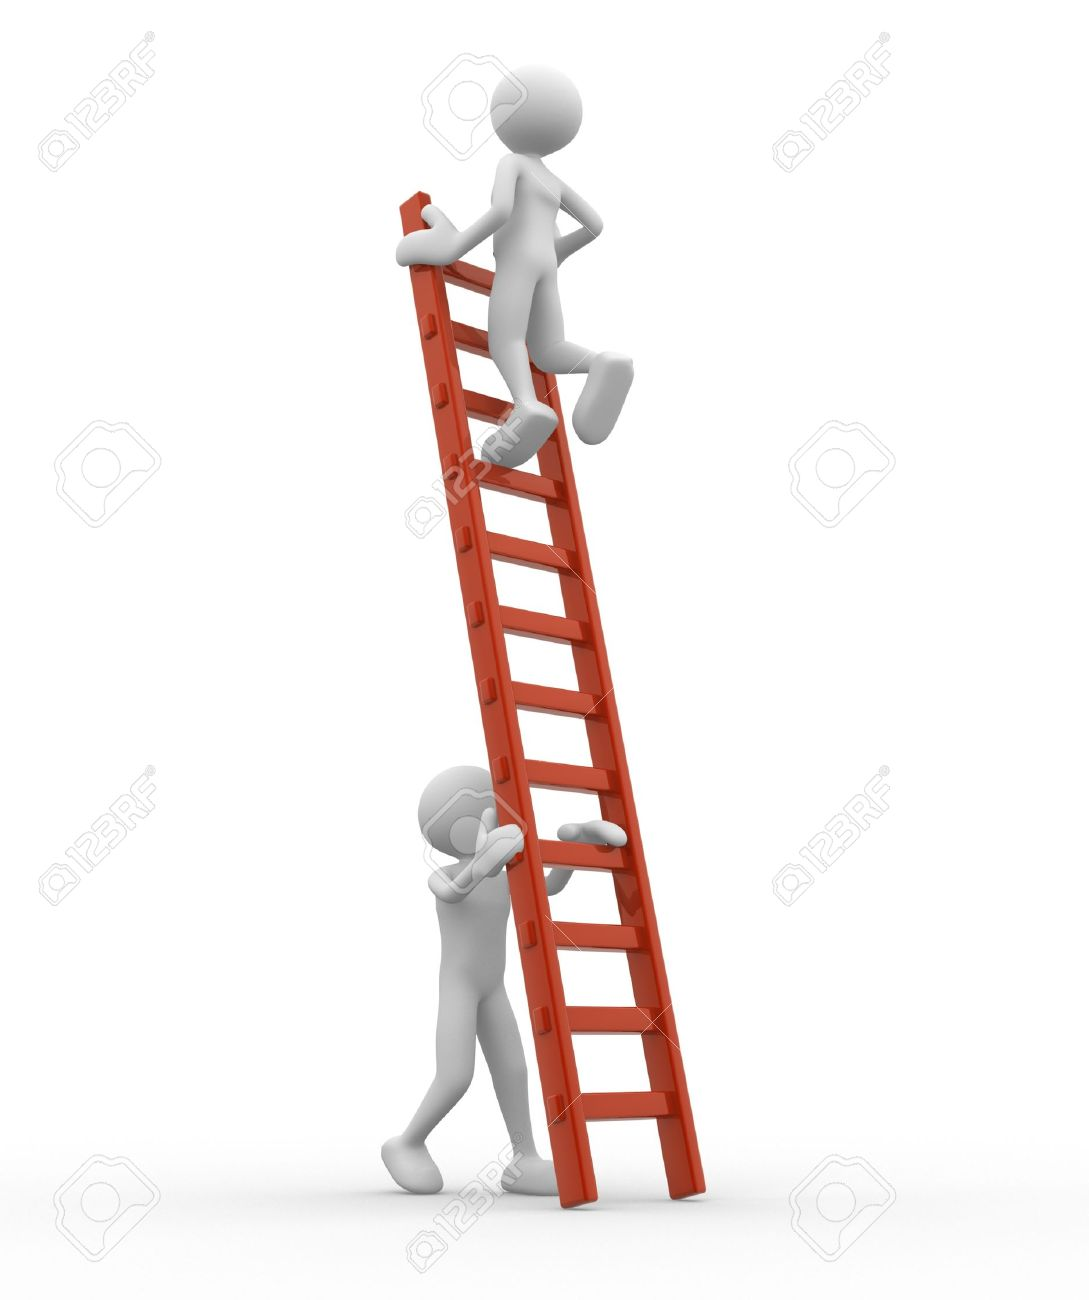 3d people - man, person is helping another to climb a ladder Standard-Bild - 17639998